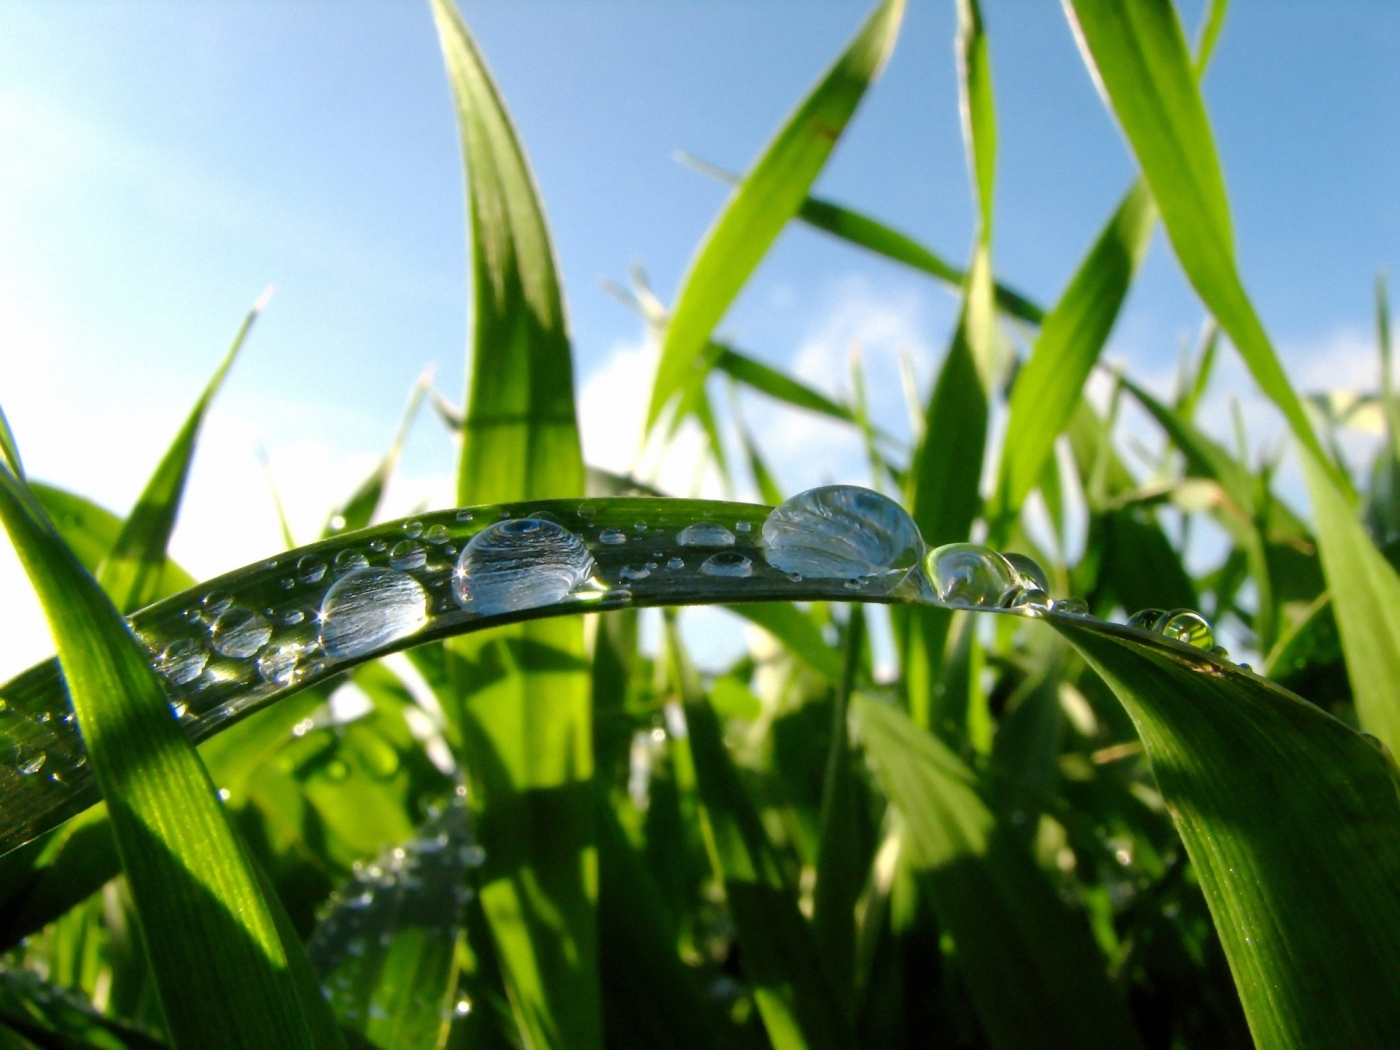 29743 download wallpaper Plants, Grass, Drops screensavers and pictures for free